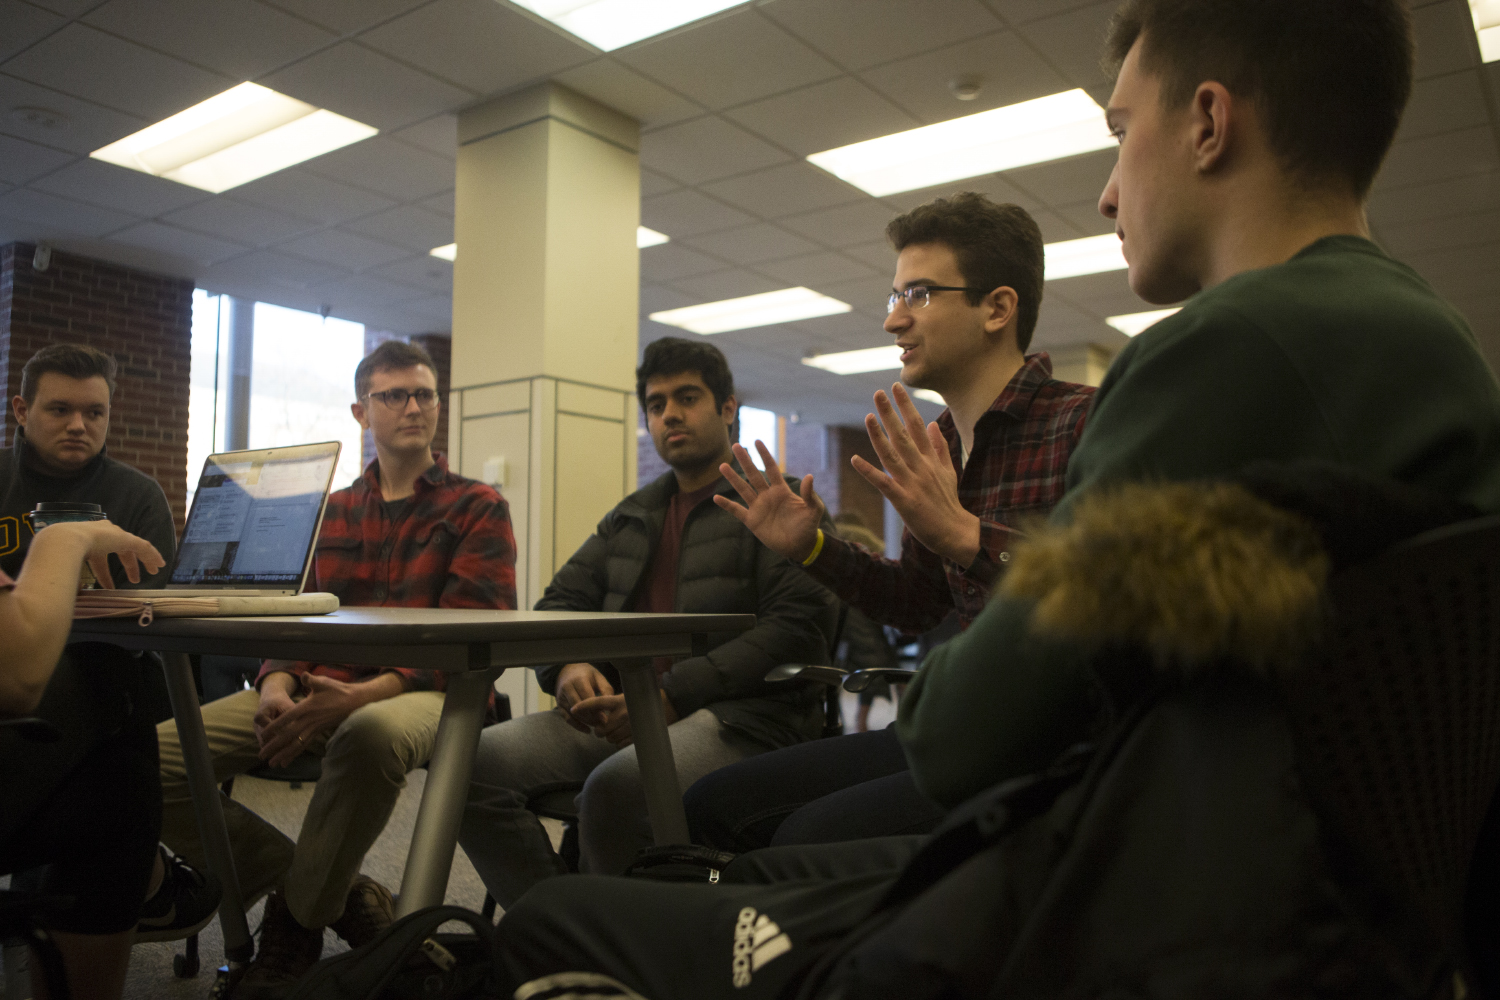 Dylan Montigney talks about Japan's esports scene at an interview in the Iowa Memorial Union on Monday, Dec. 10, 2018.